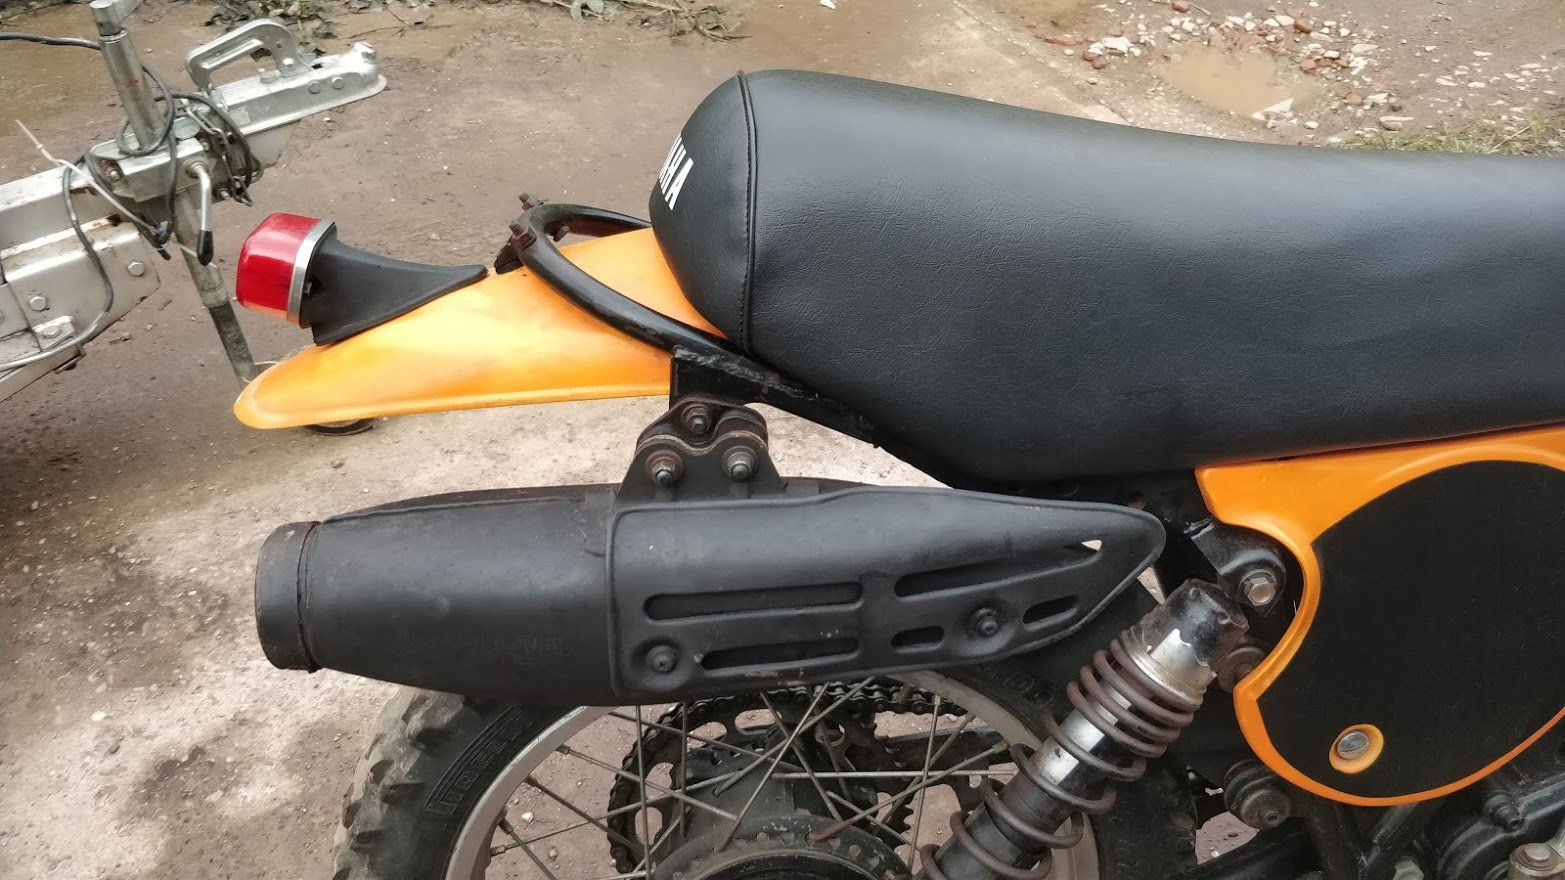 1977 Rare Yamaha TT500 (like XT500) with road lights For Sale (picture 3 of 6)